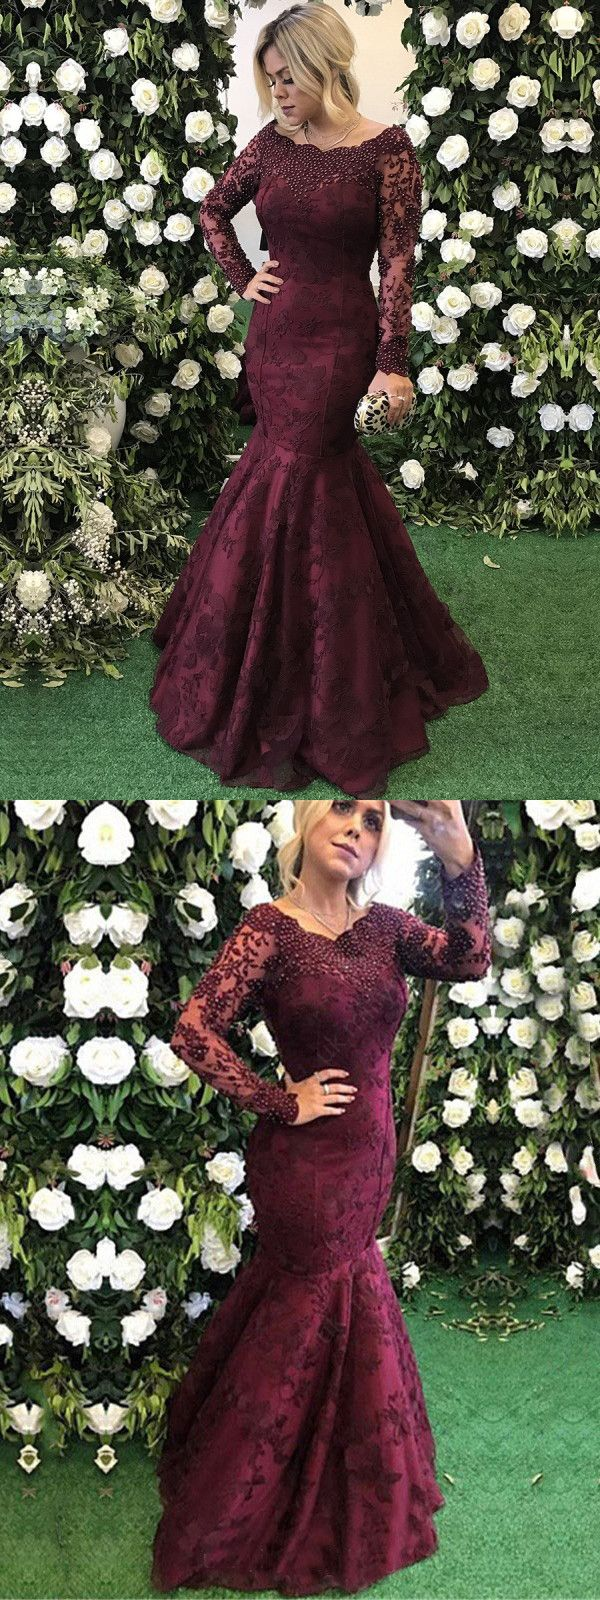 Mermaid burgundy prom dress modest cheap lace long prom dress